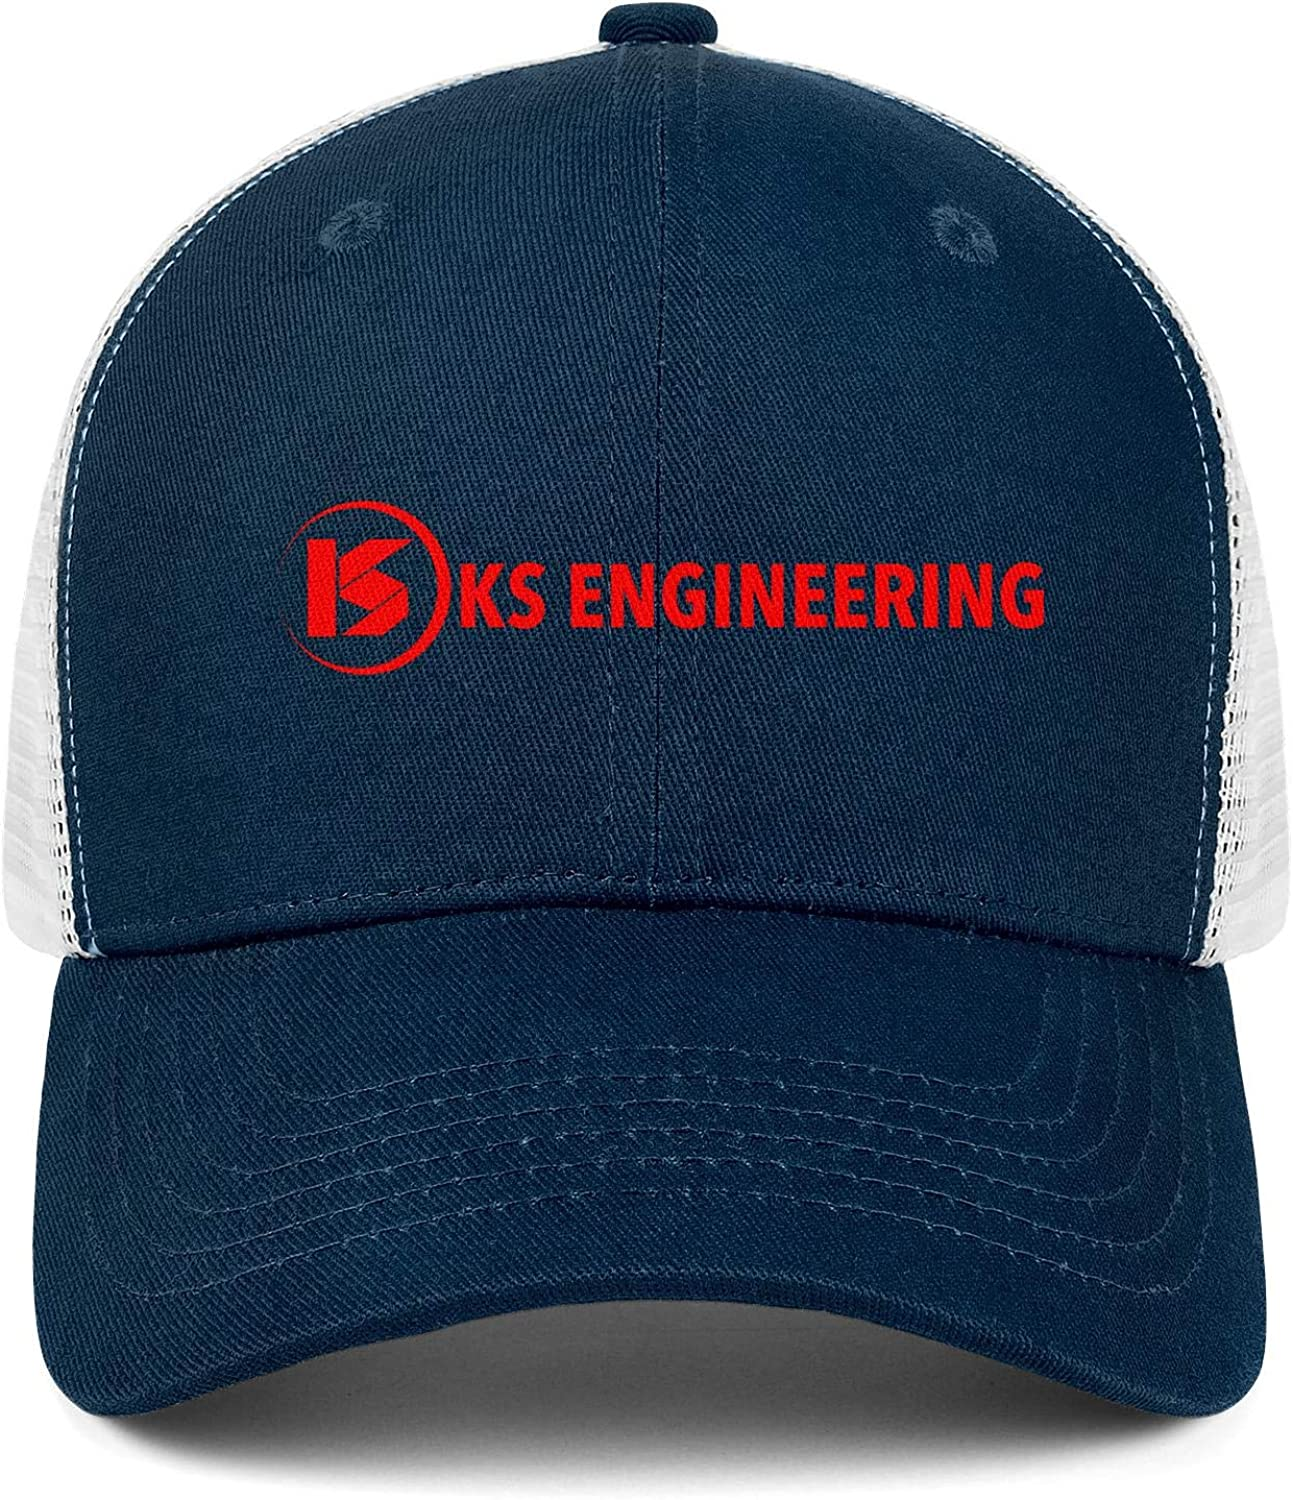 Mens Womens Mesh Back Running Trucker Hats Youth Sun Hat K/&S-Engineering